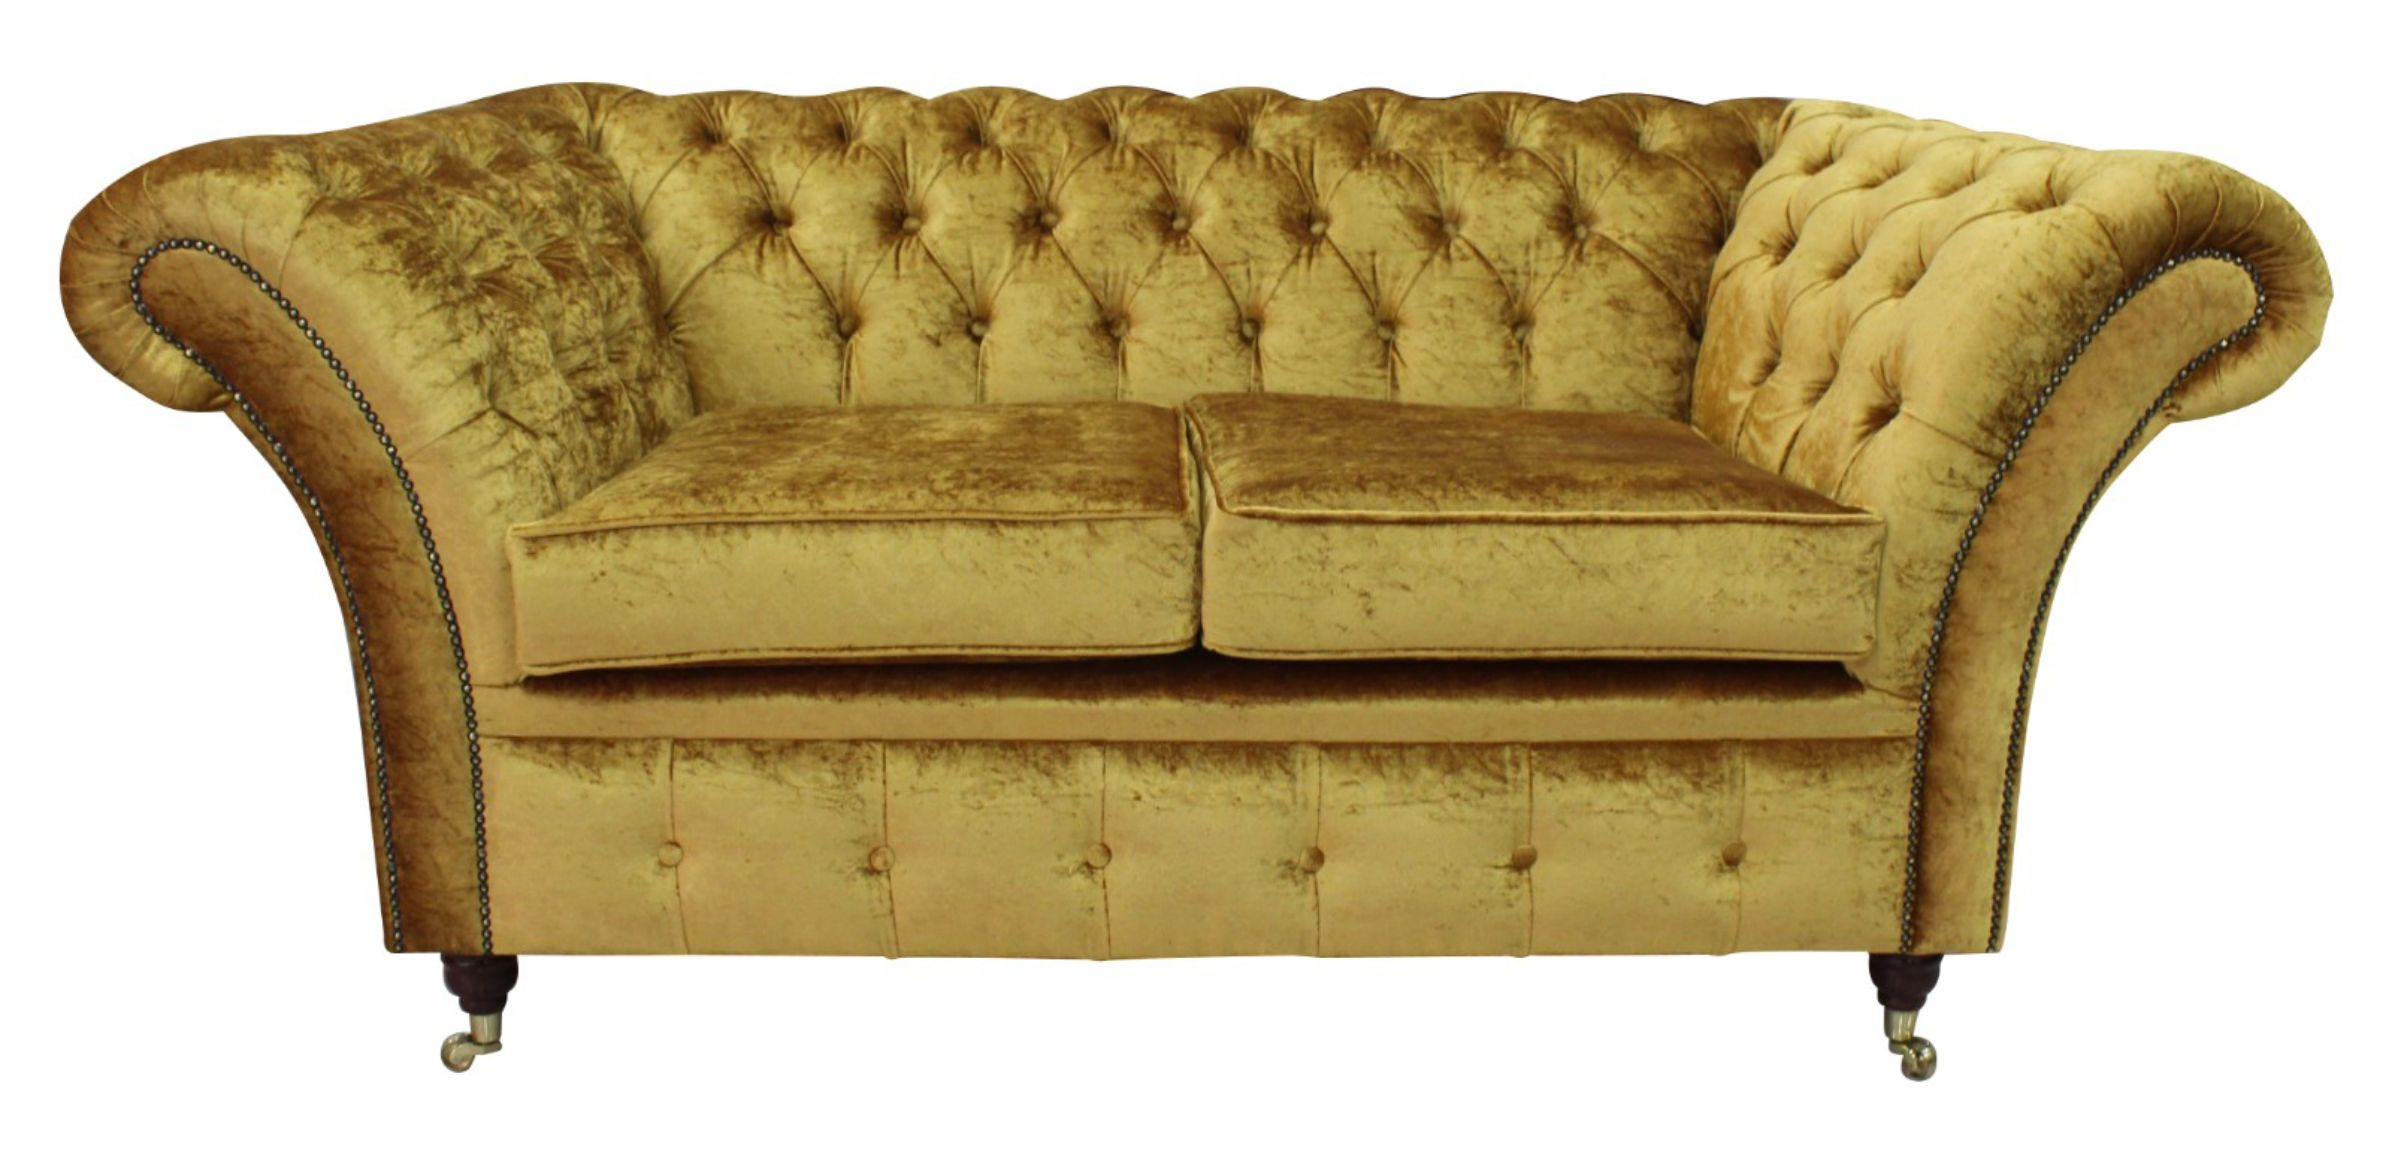 chesterfield sofas quick delivery gold fabric 12 month. Black Bedroom Furniture Sets. Home Design Ideas